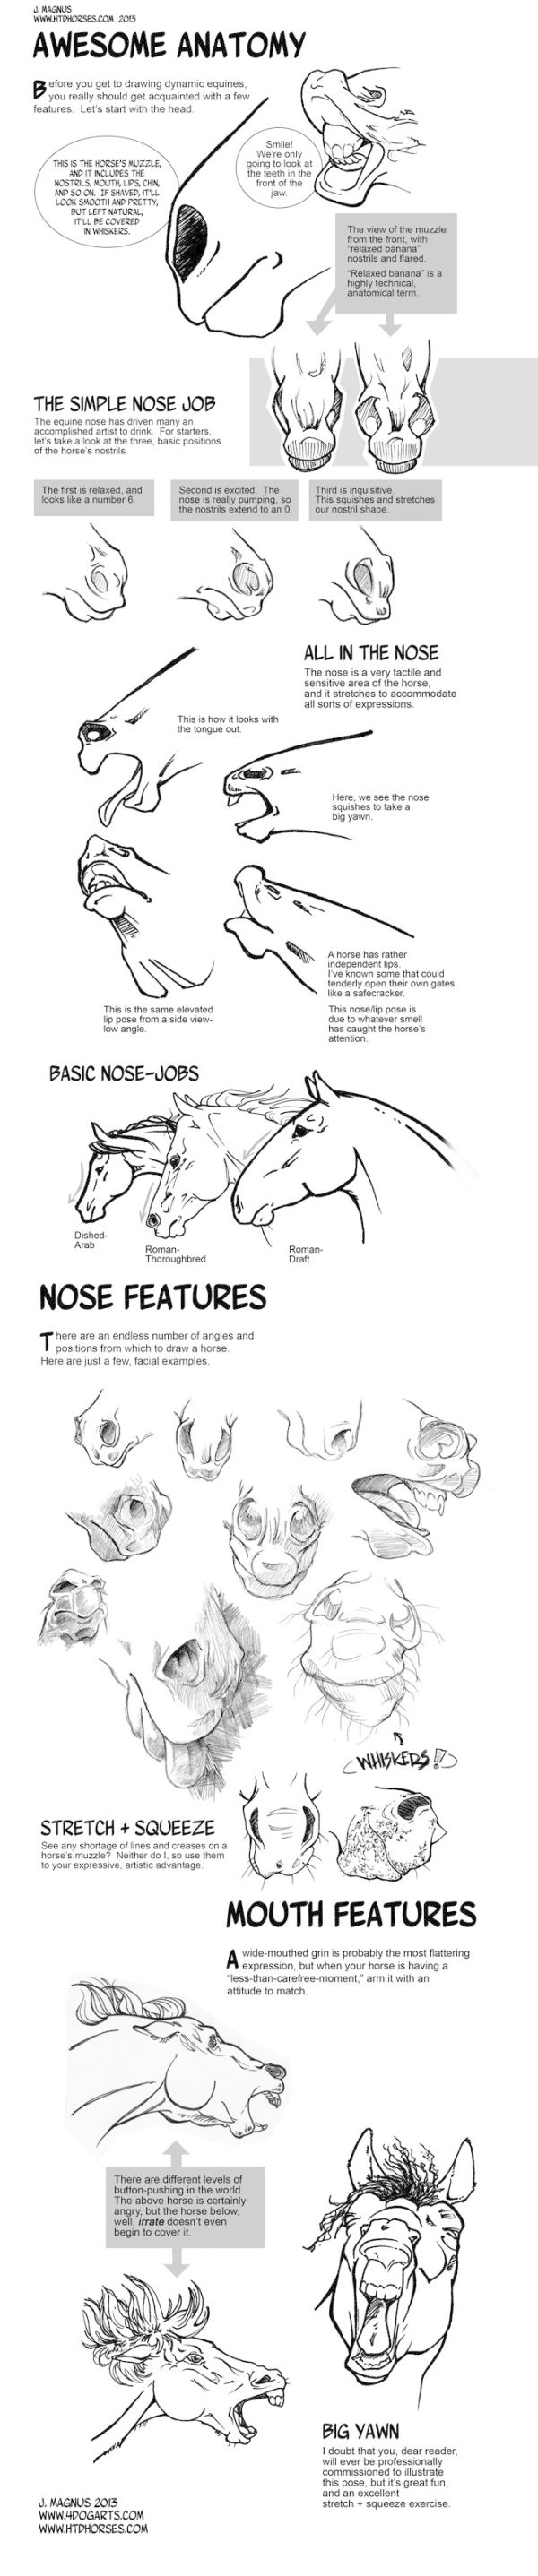 Horse Anatomy Part I by sketcherjak.deviantart.com on @deviantART by ...